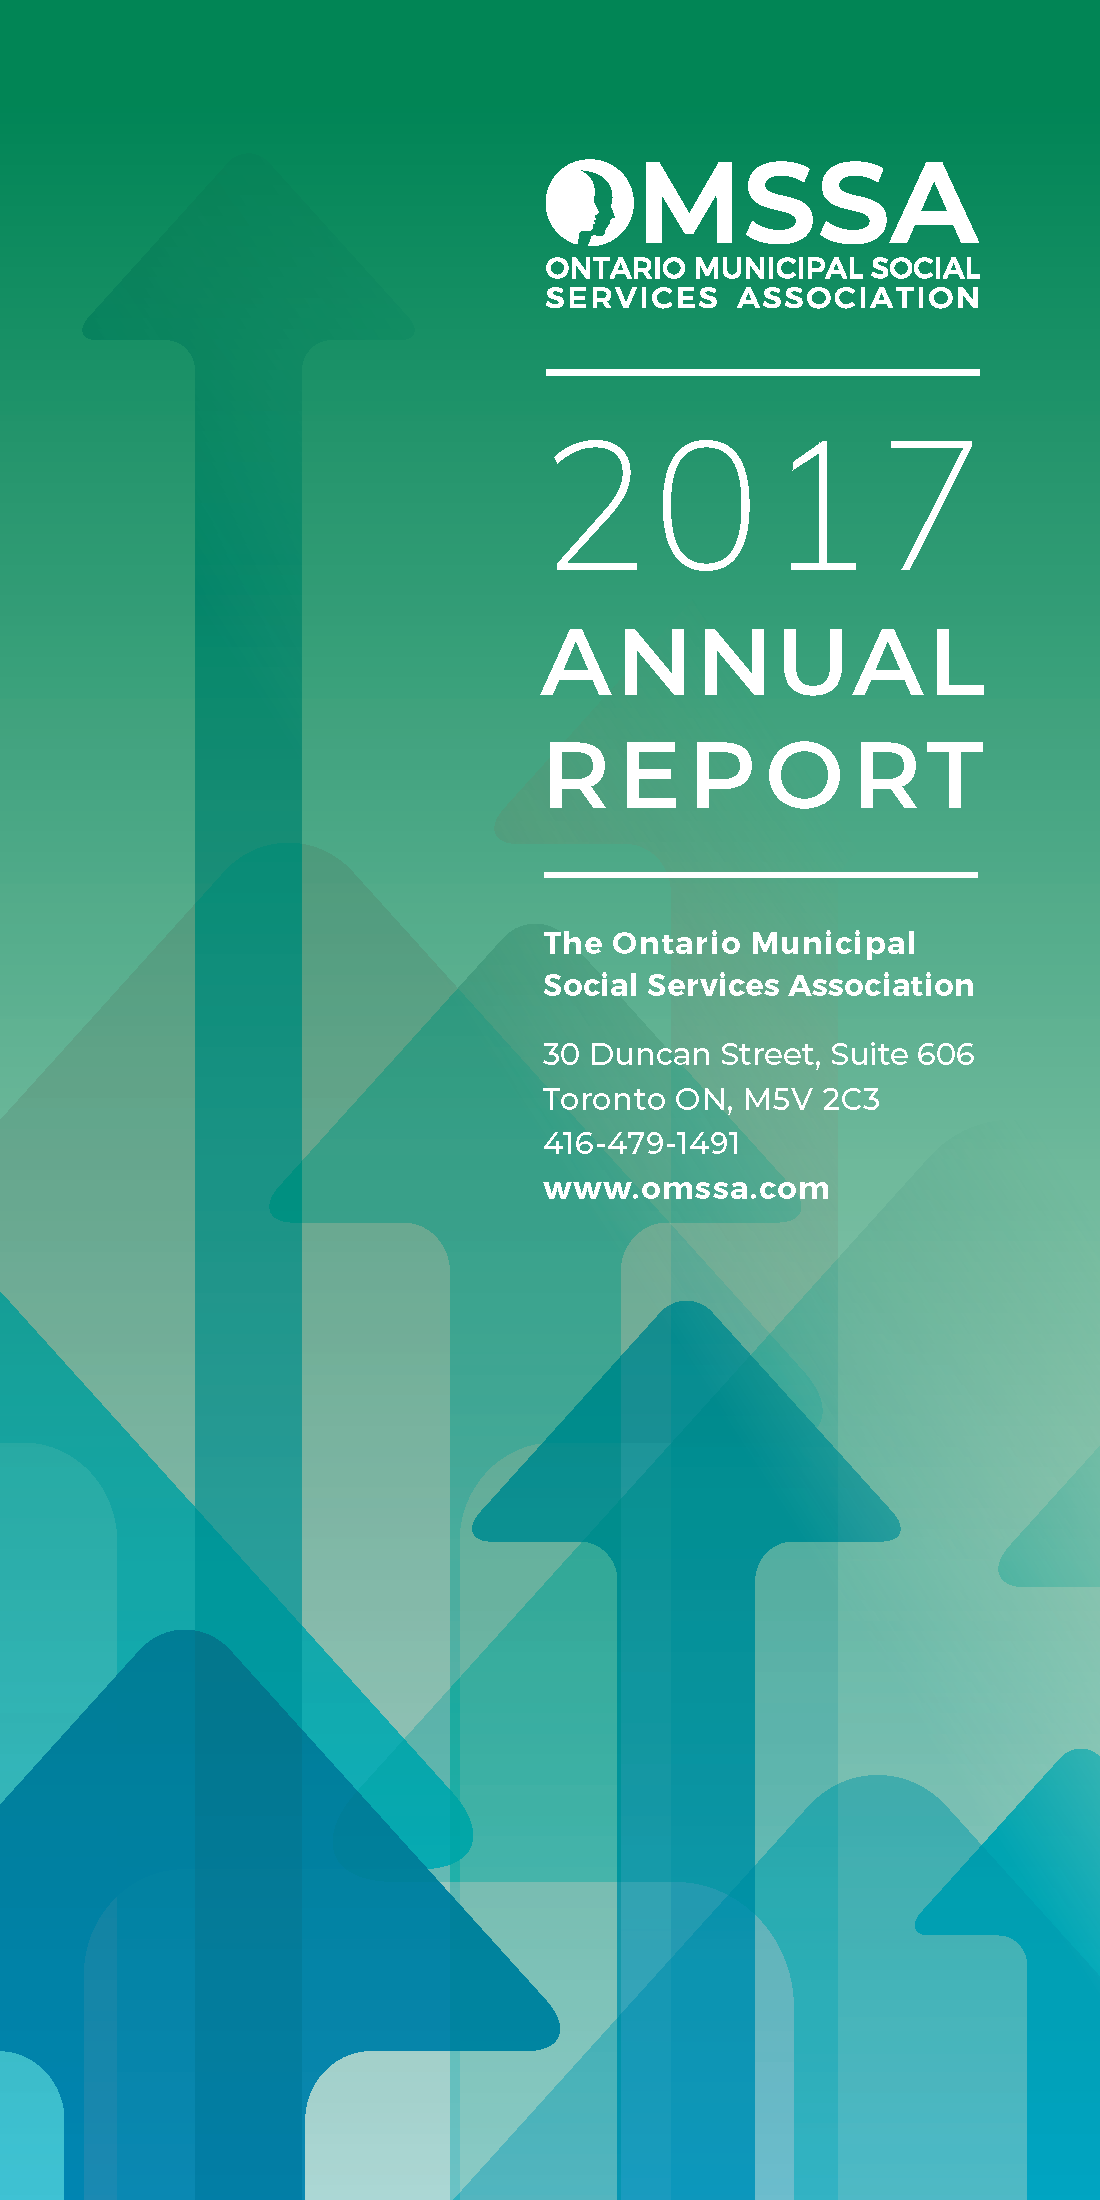 Cover of OMSSA's 2017 Annual Report